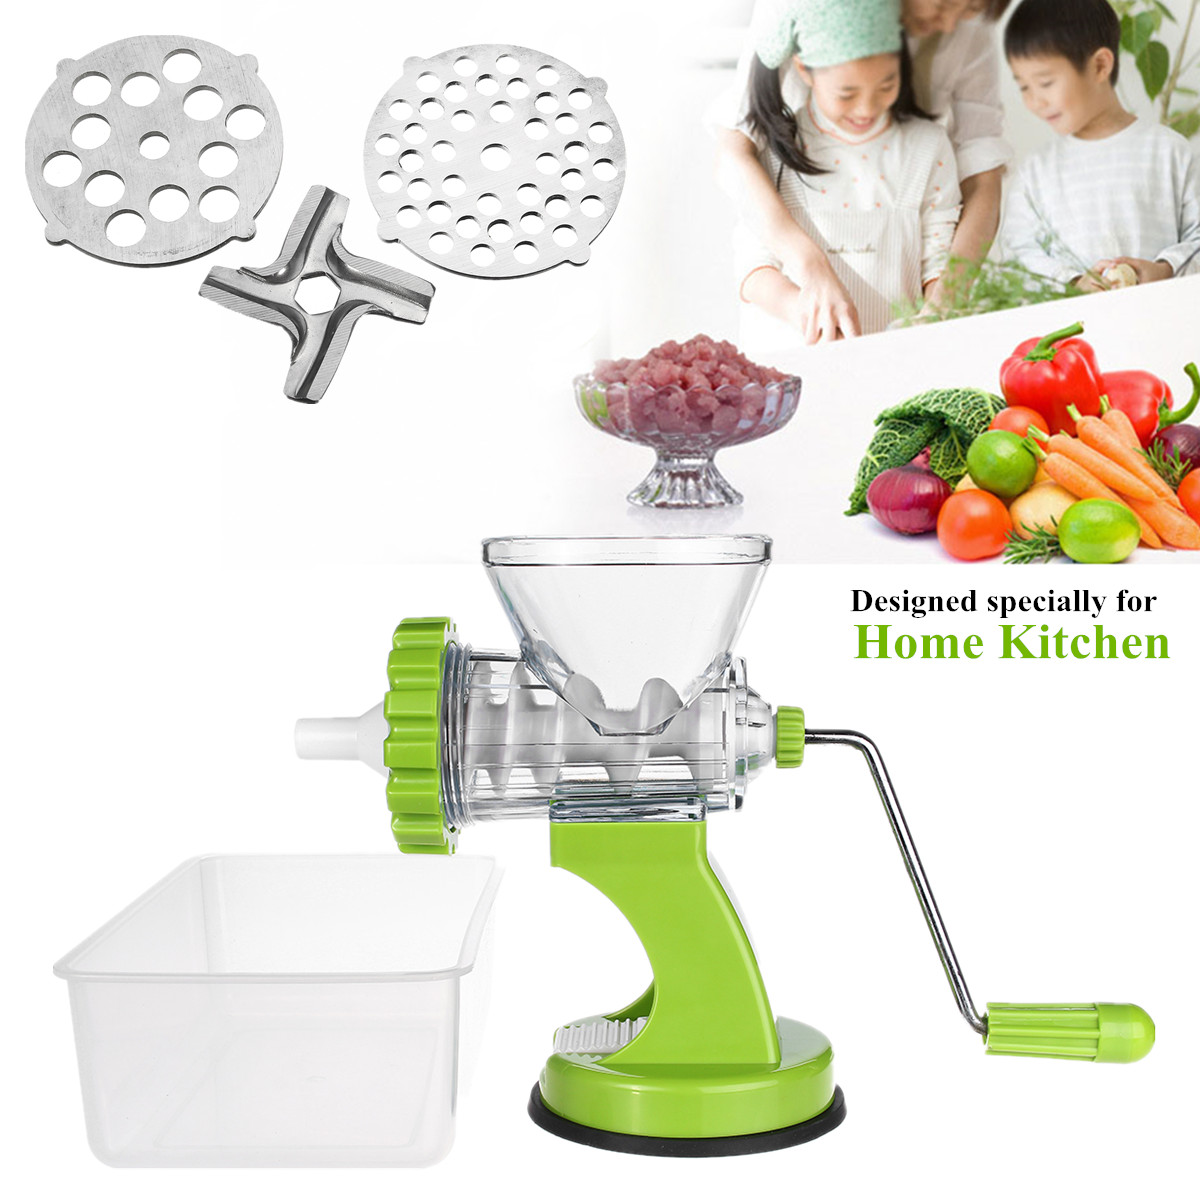 Meat Grinder Mincer Slicer Multifunction Machine With Stainless Steel Blade/Tomato Vegetable Chopper Appliances For Home